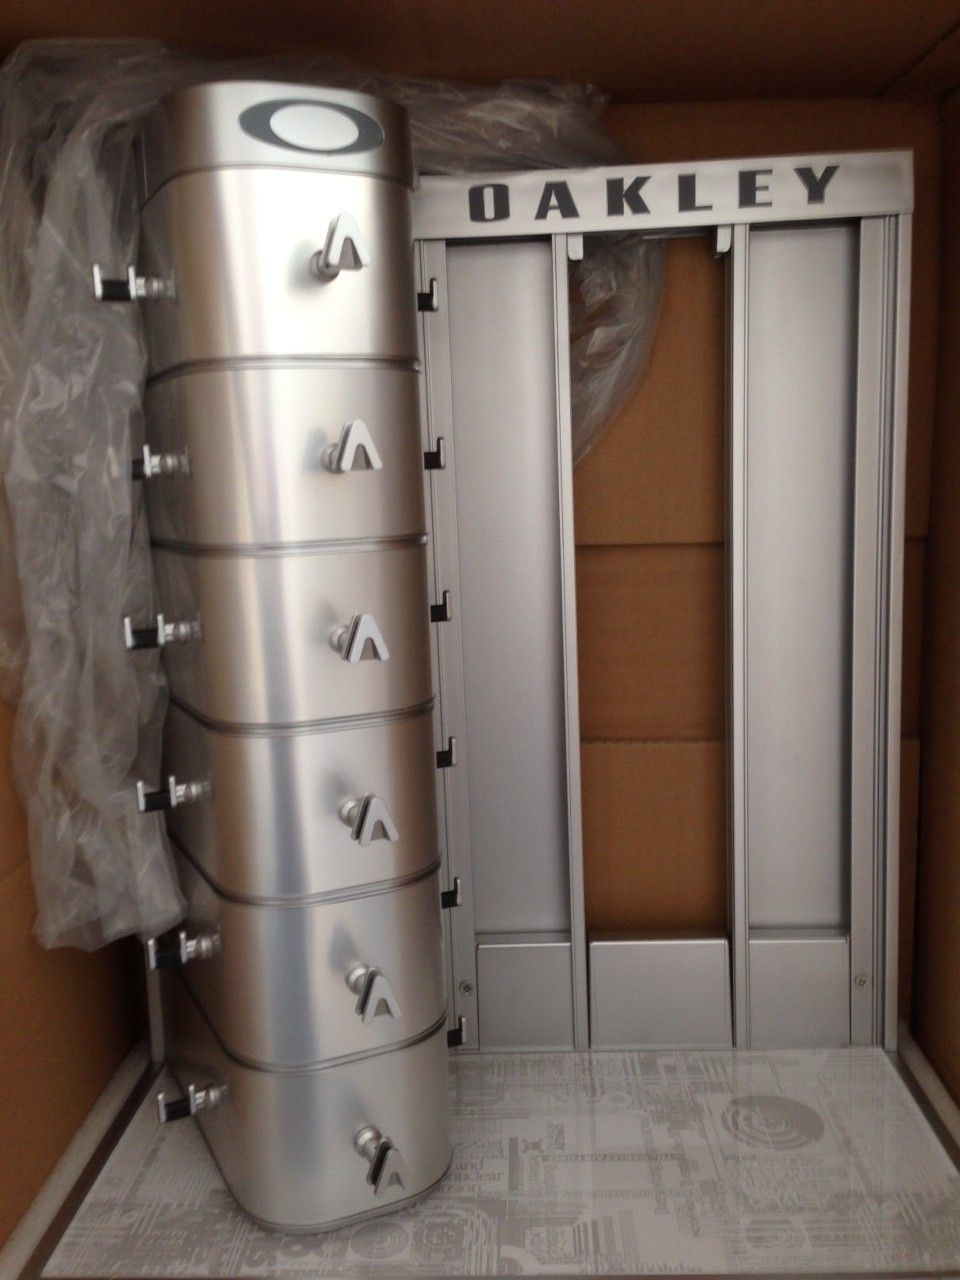 NIB OAKLEY X-METAL SUNGLASSES/ RX FRAME DISPLAY RARE NEW IN BOX! - IMG_7813.JPG